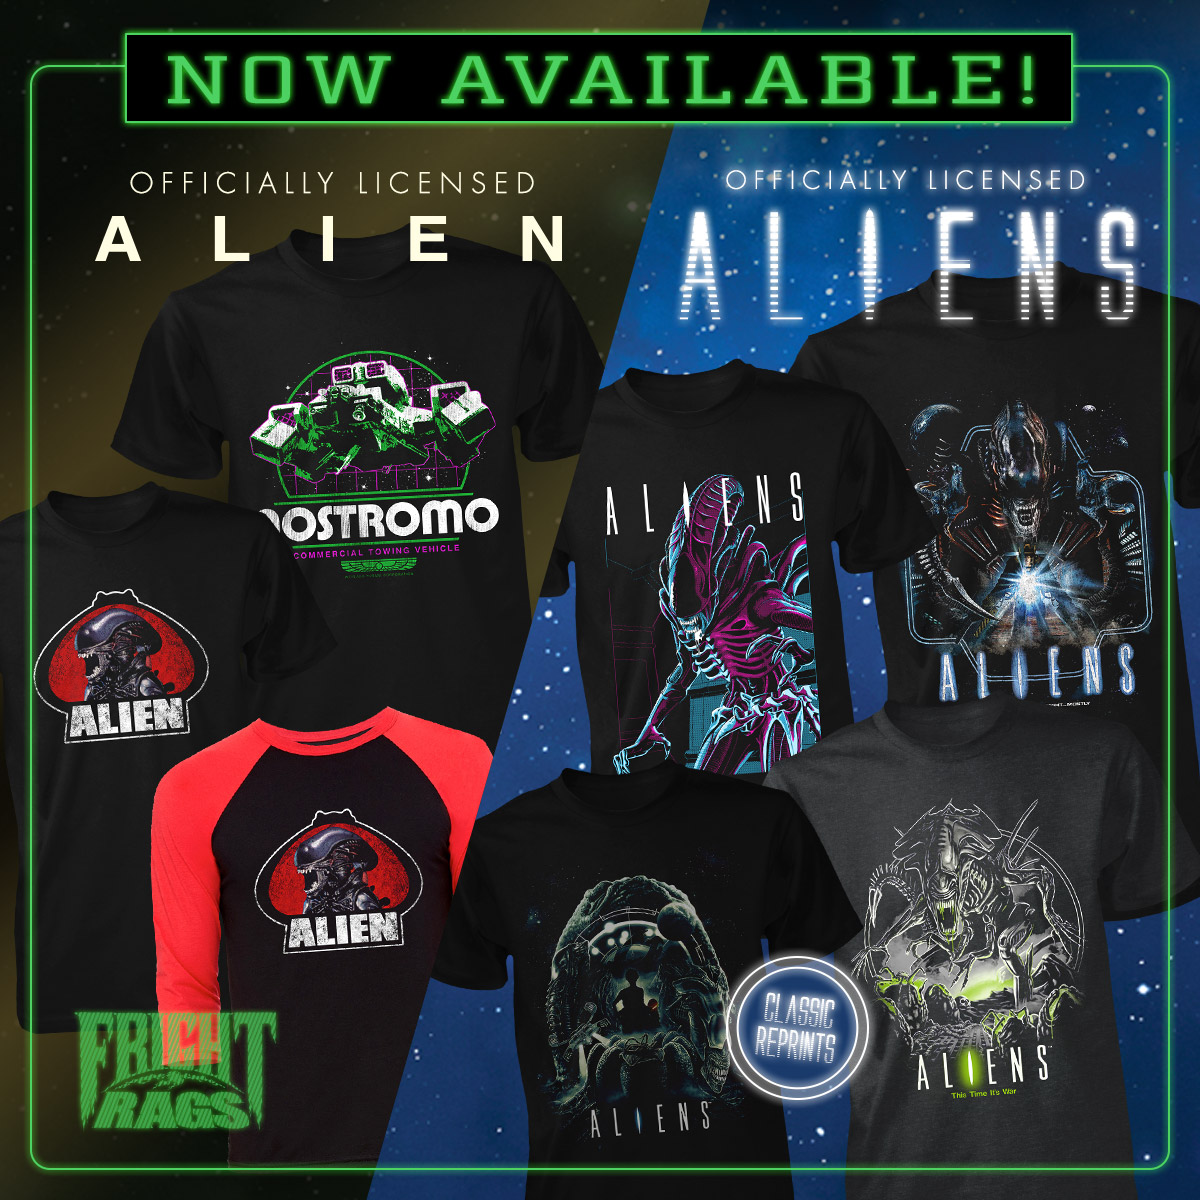 Get ready to party with Return of the Living Dead, Alien, Aliens, & Sleepaway Camp 2 shirtsAvailable now at Fright-Rags.com -